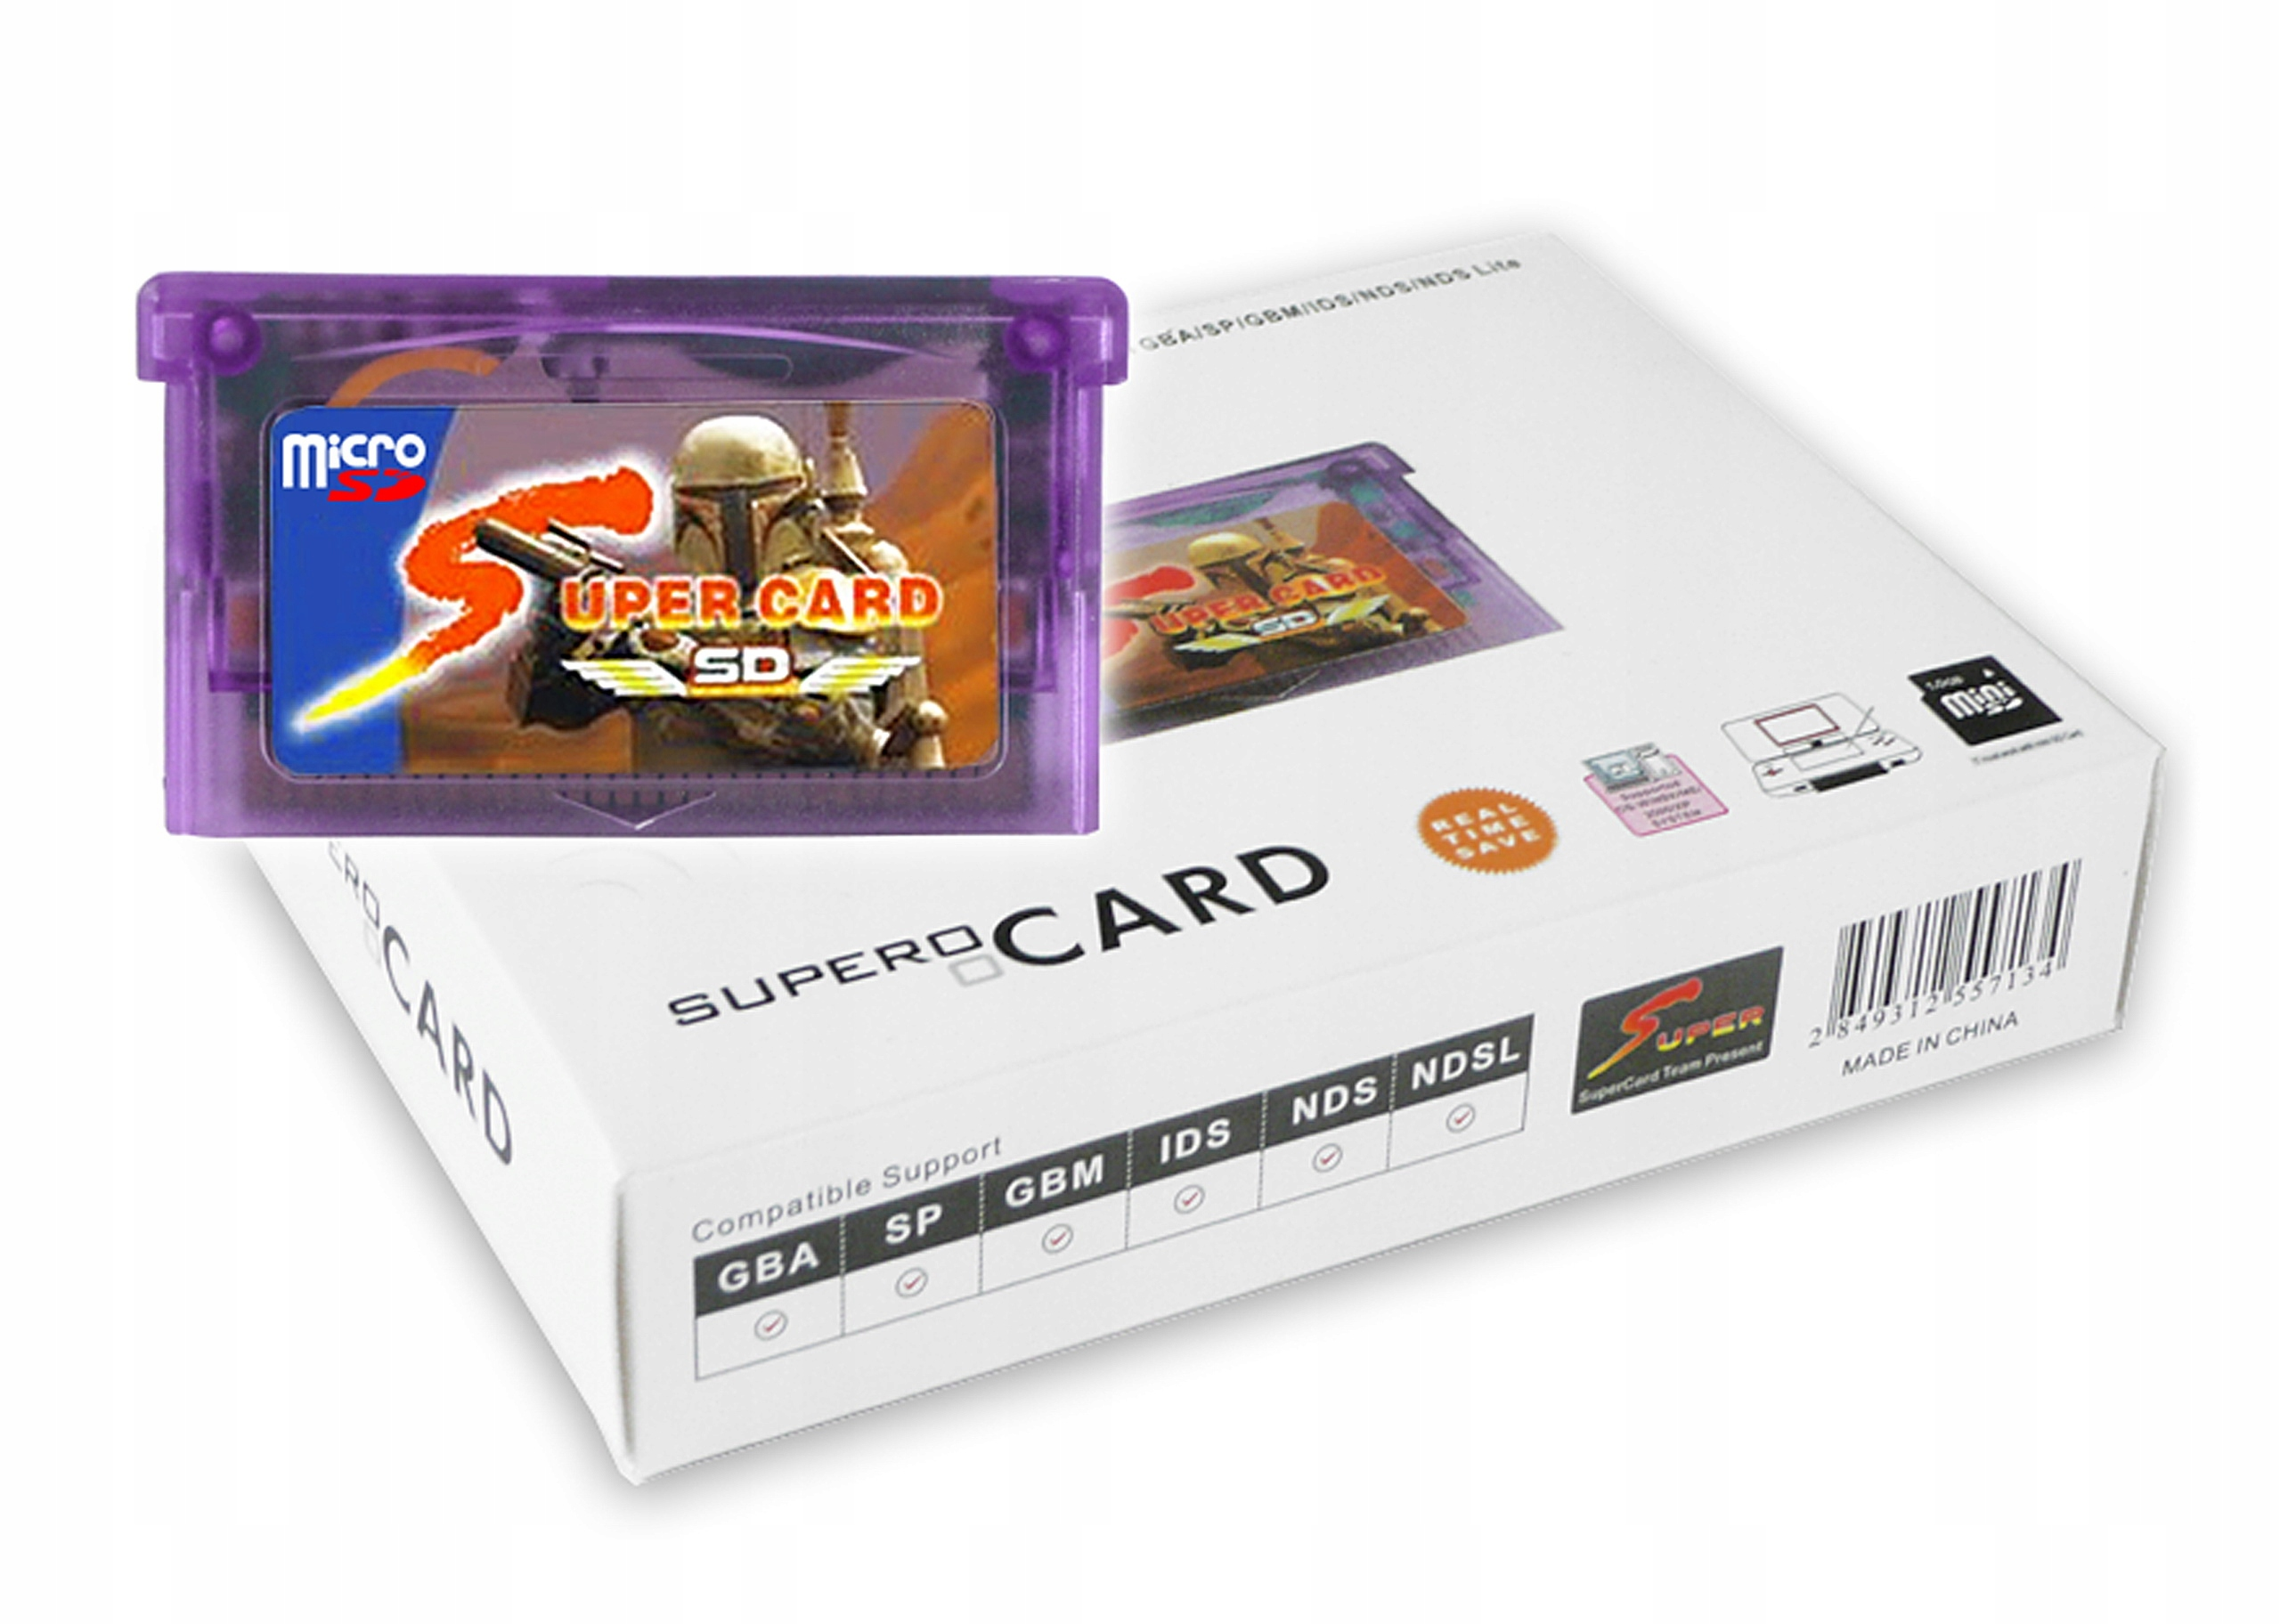 Item SUPER CARD SUPERCARD MICRO SD RECORDER FOR GBA DS